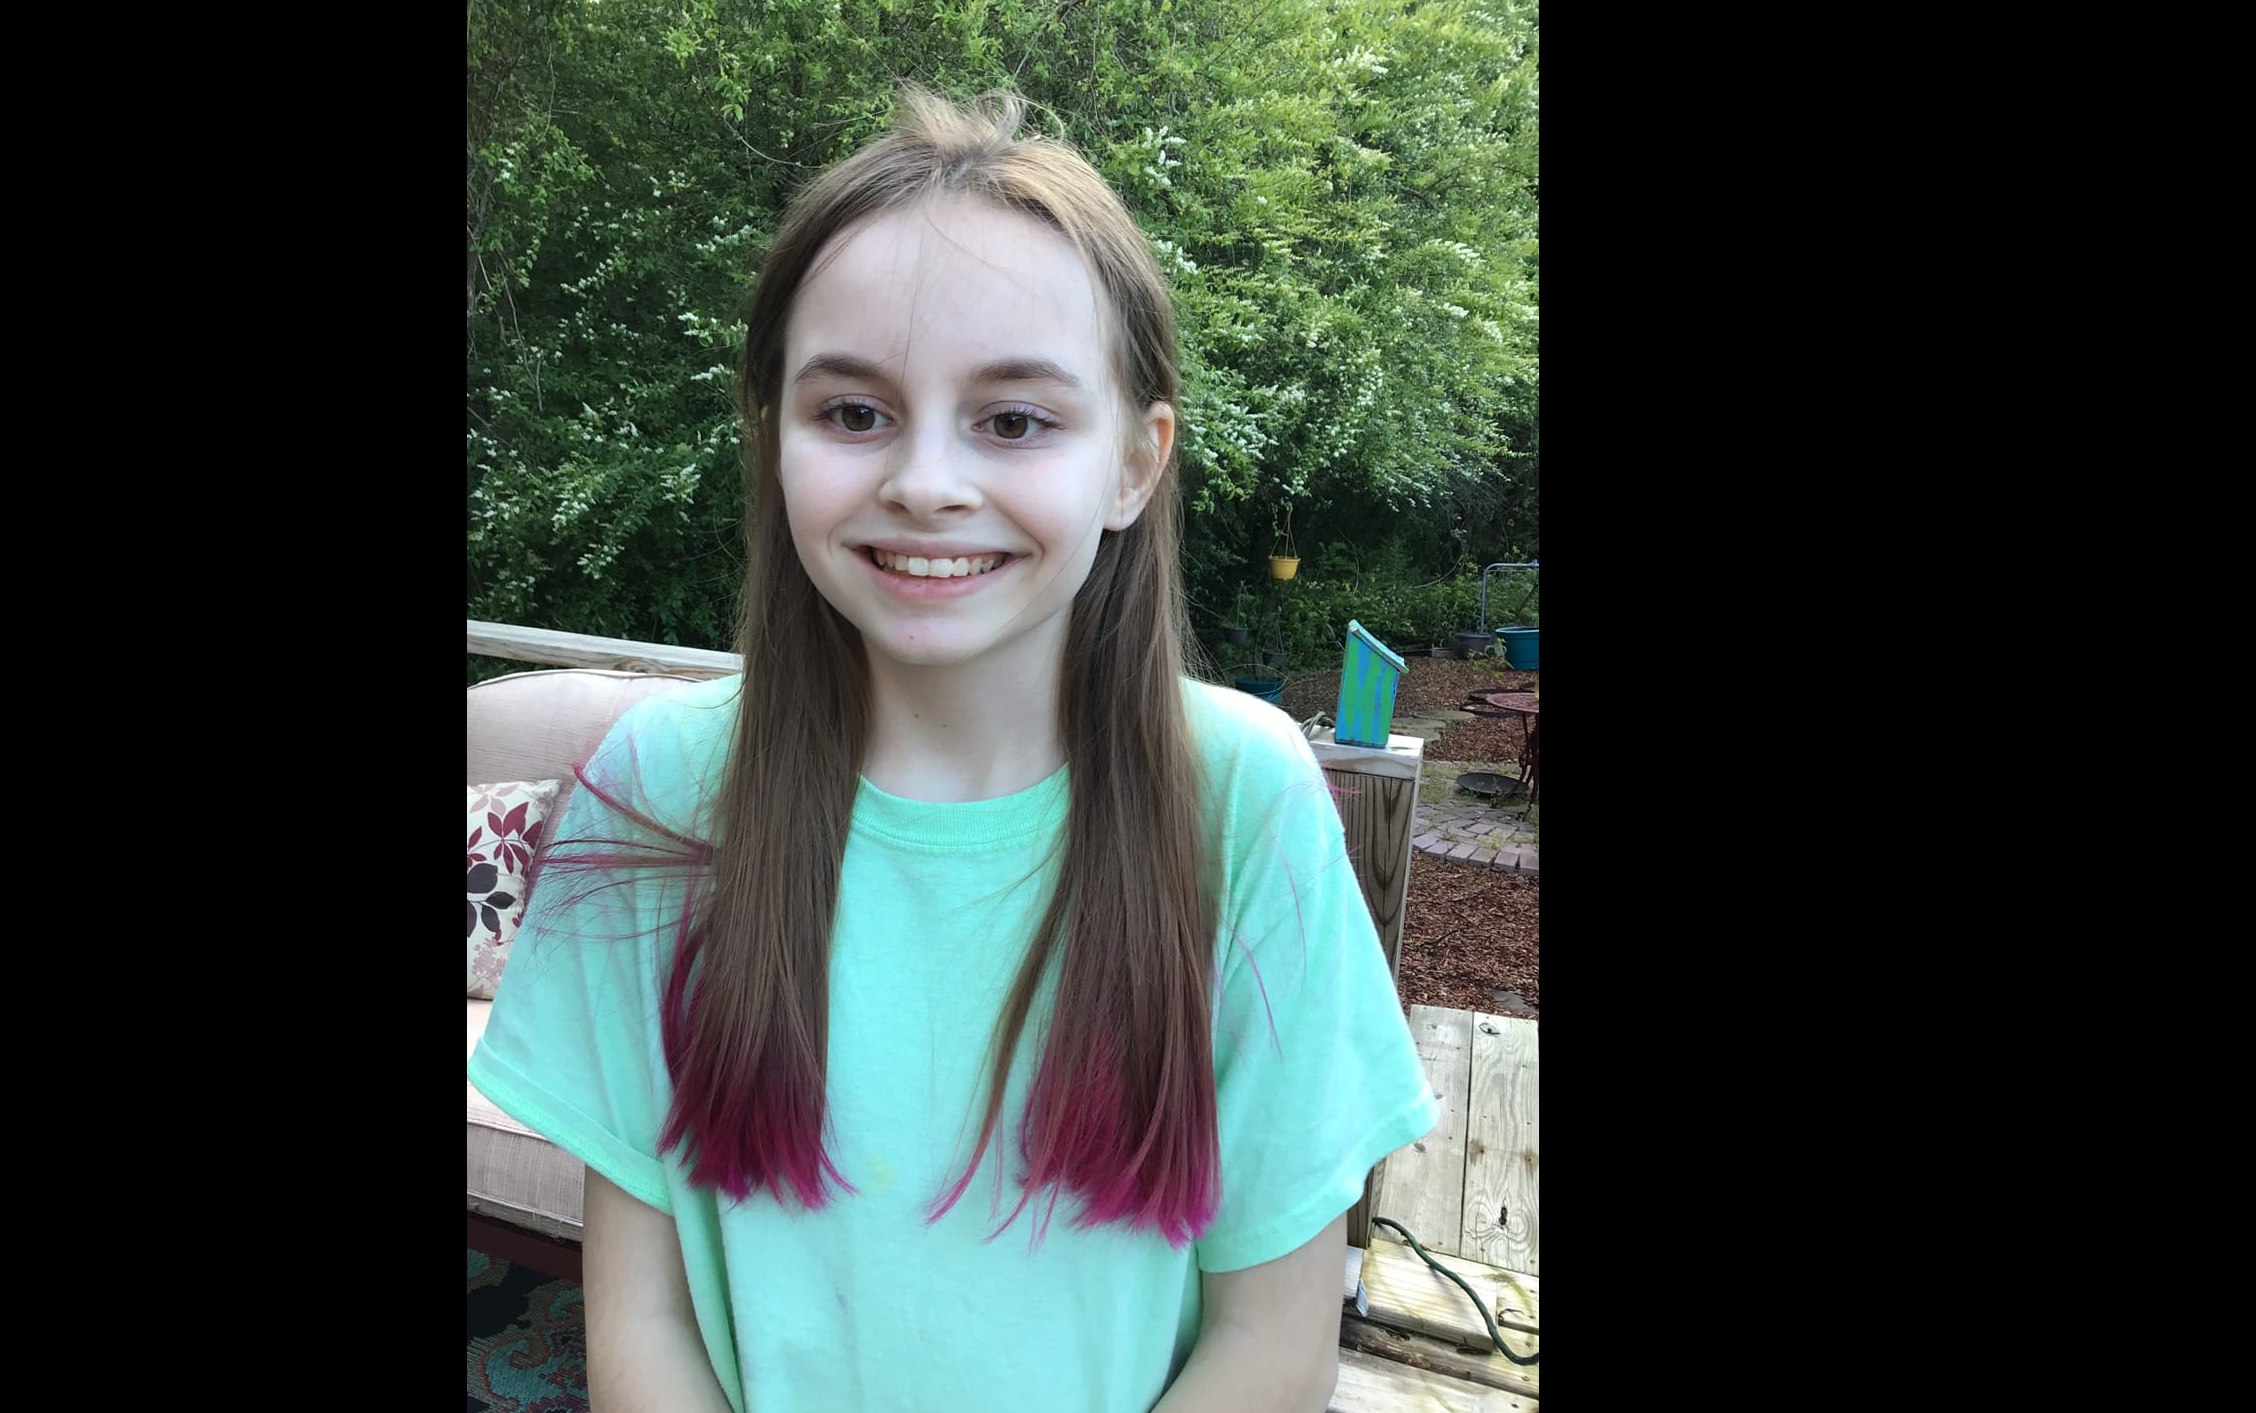 UPDATE: Argo Police locate missing 11-year-old girl